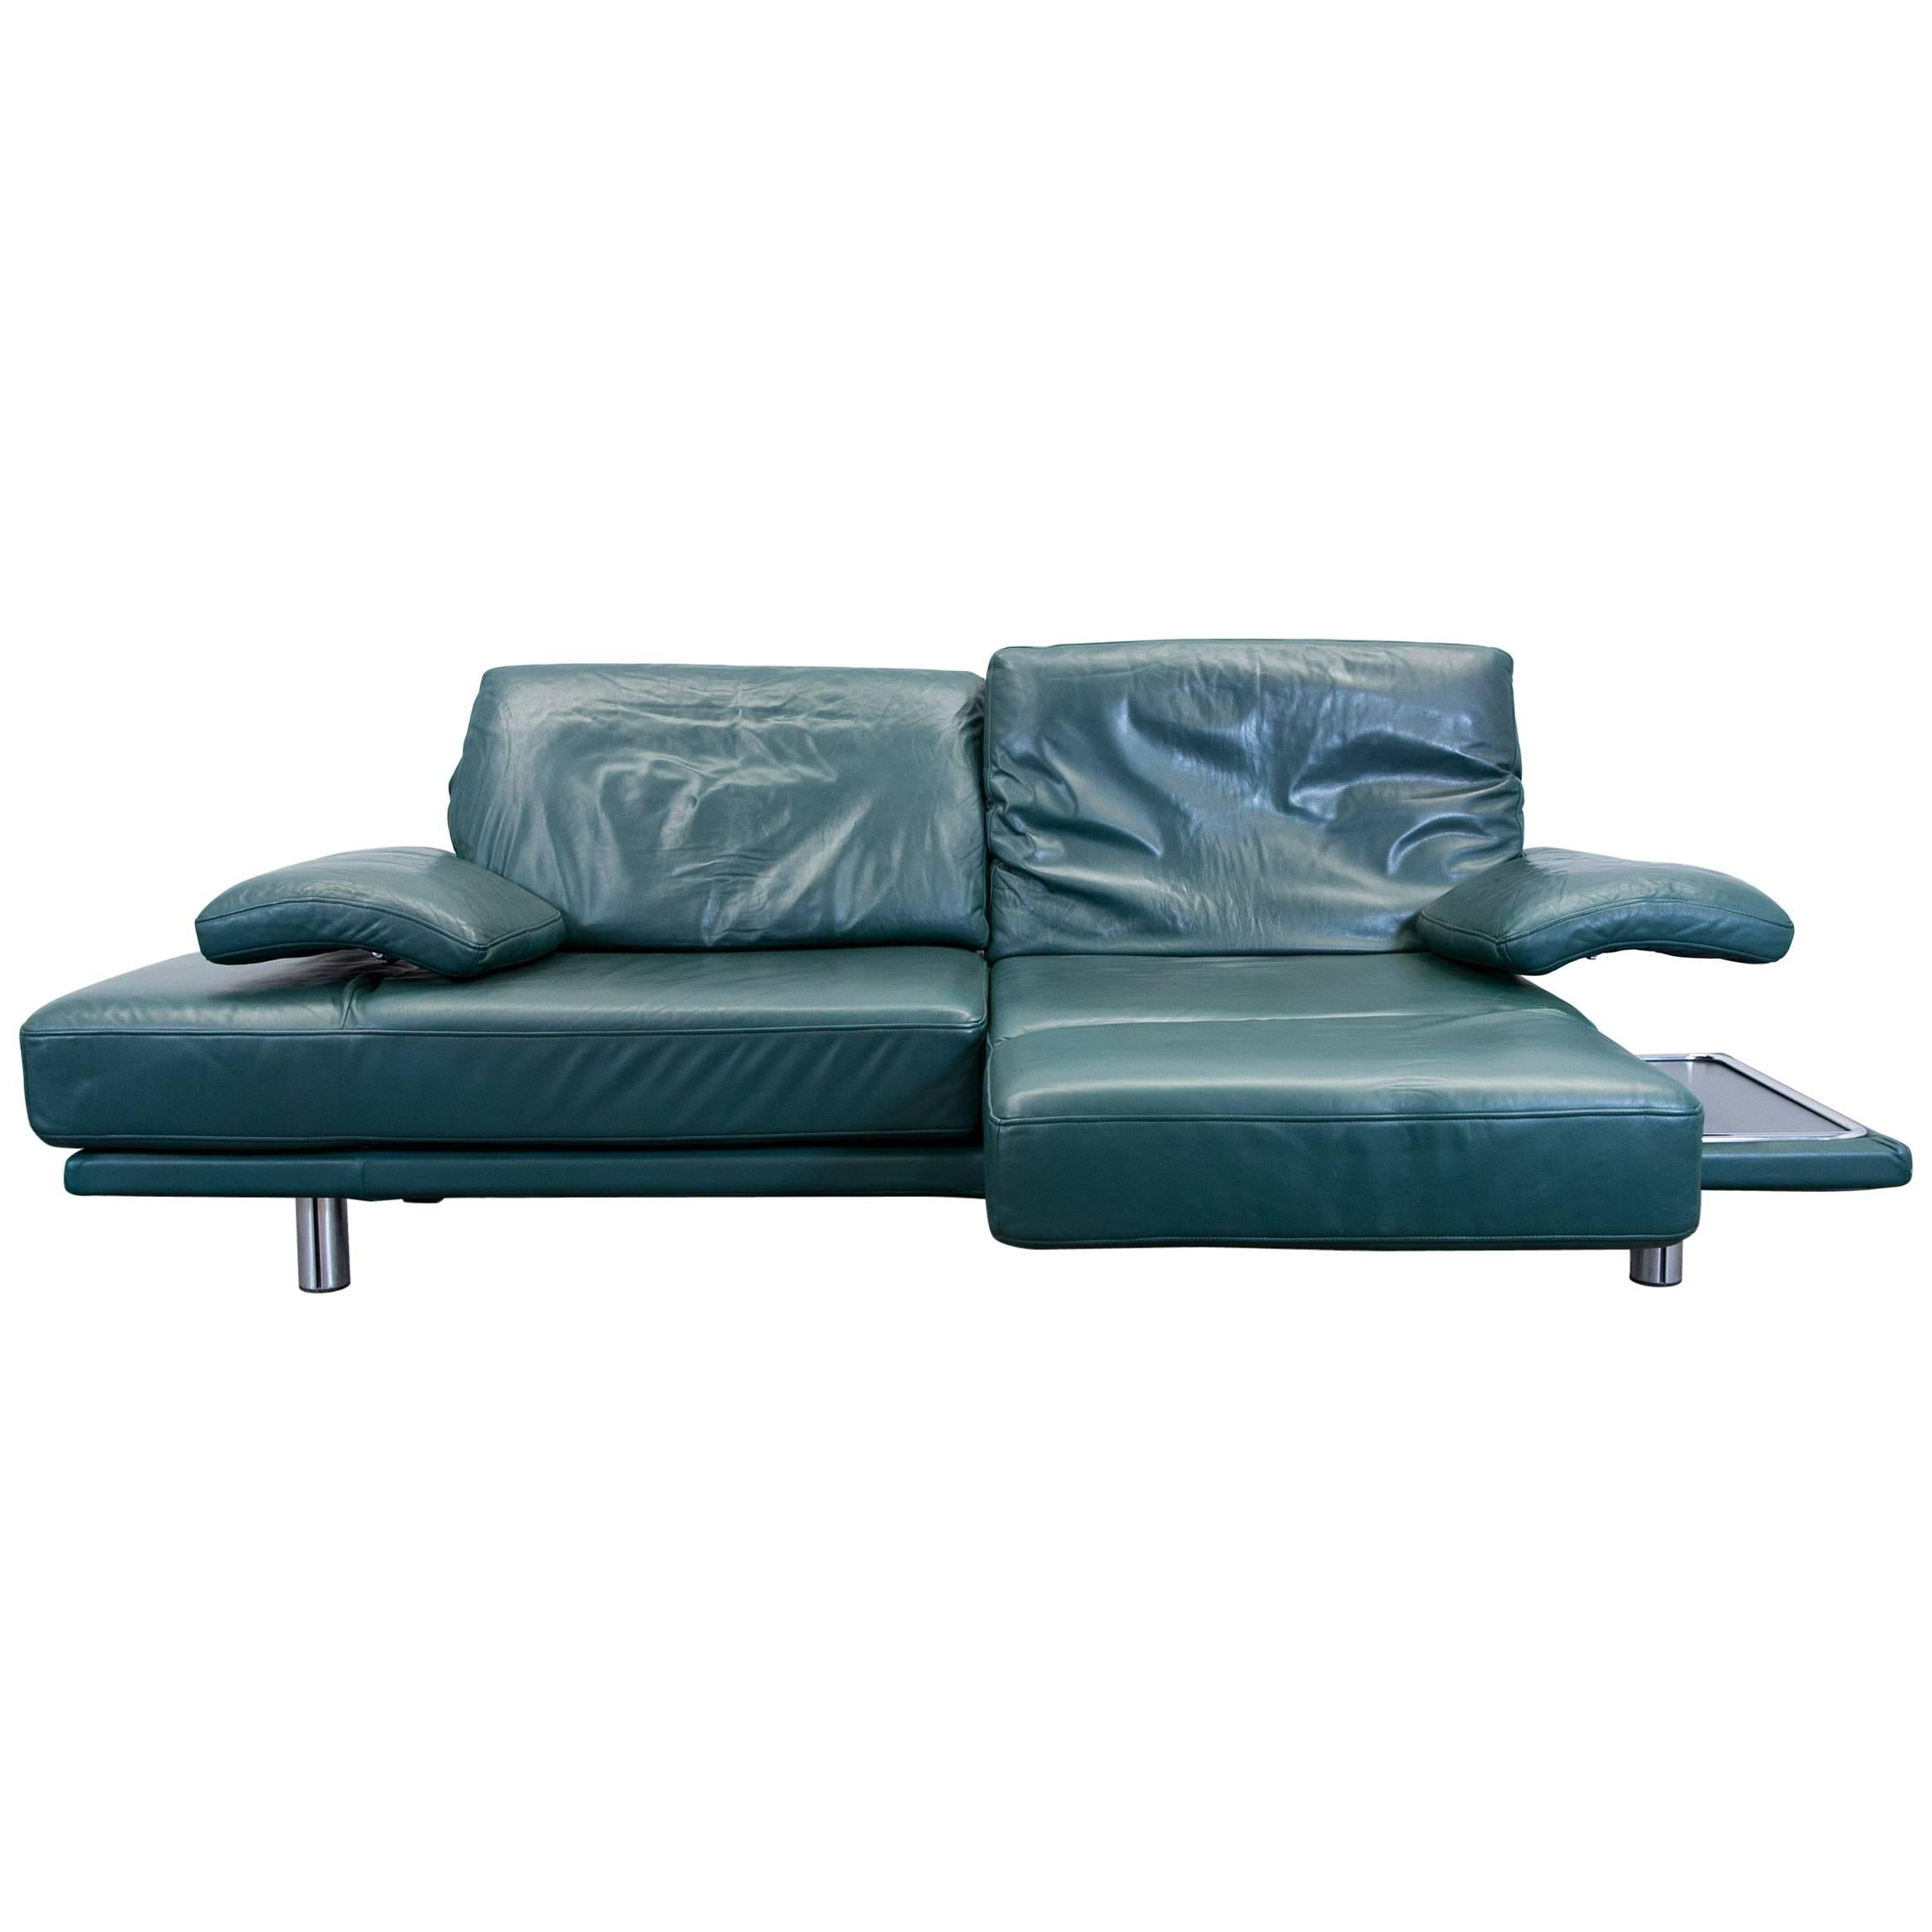 Bettsessel Willhaben Rolf Benz Relaxliege Simple Rolf Benz Sofa Reiere Rechts Stoff